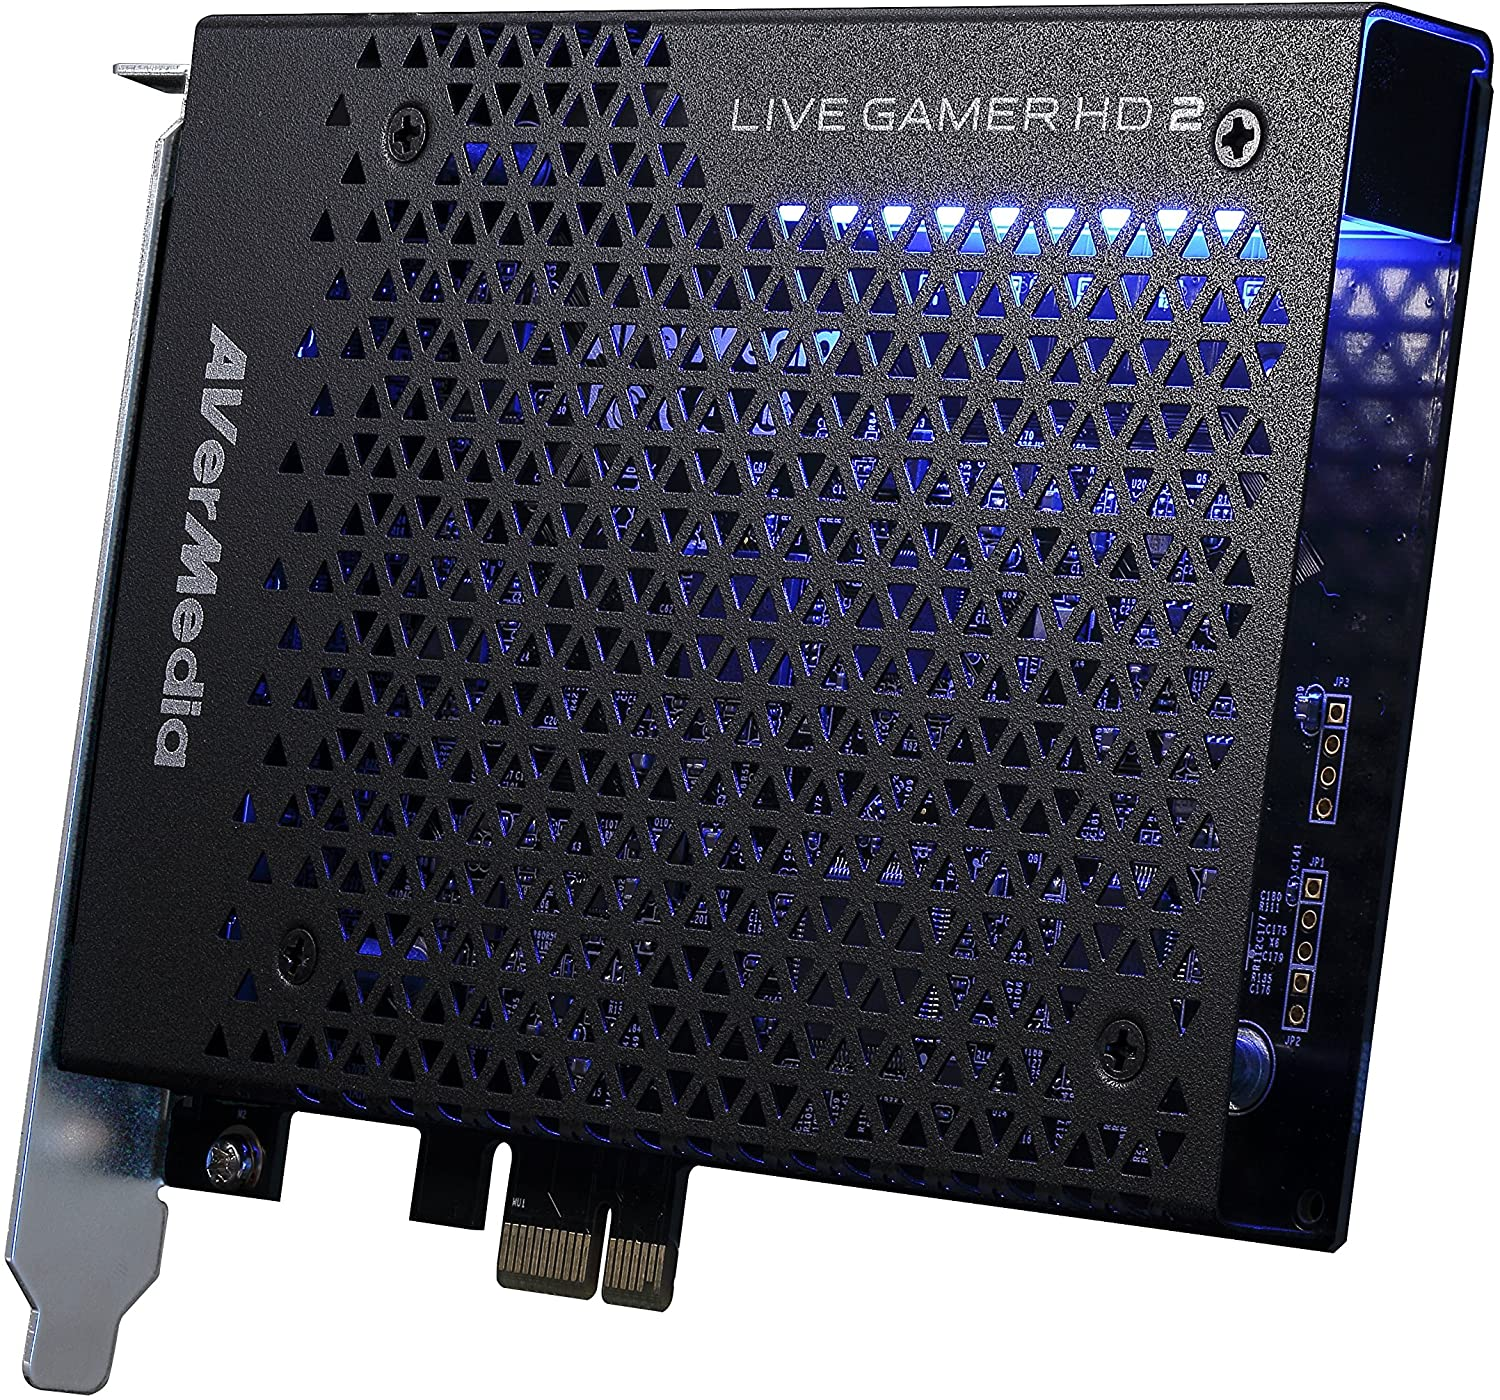 AVerMedia GC570 Live Gamer HD2 Internal RGB HDMI Capture Card